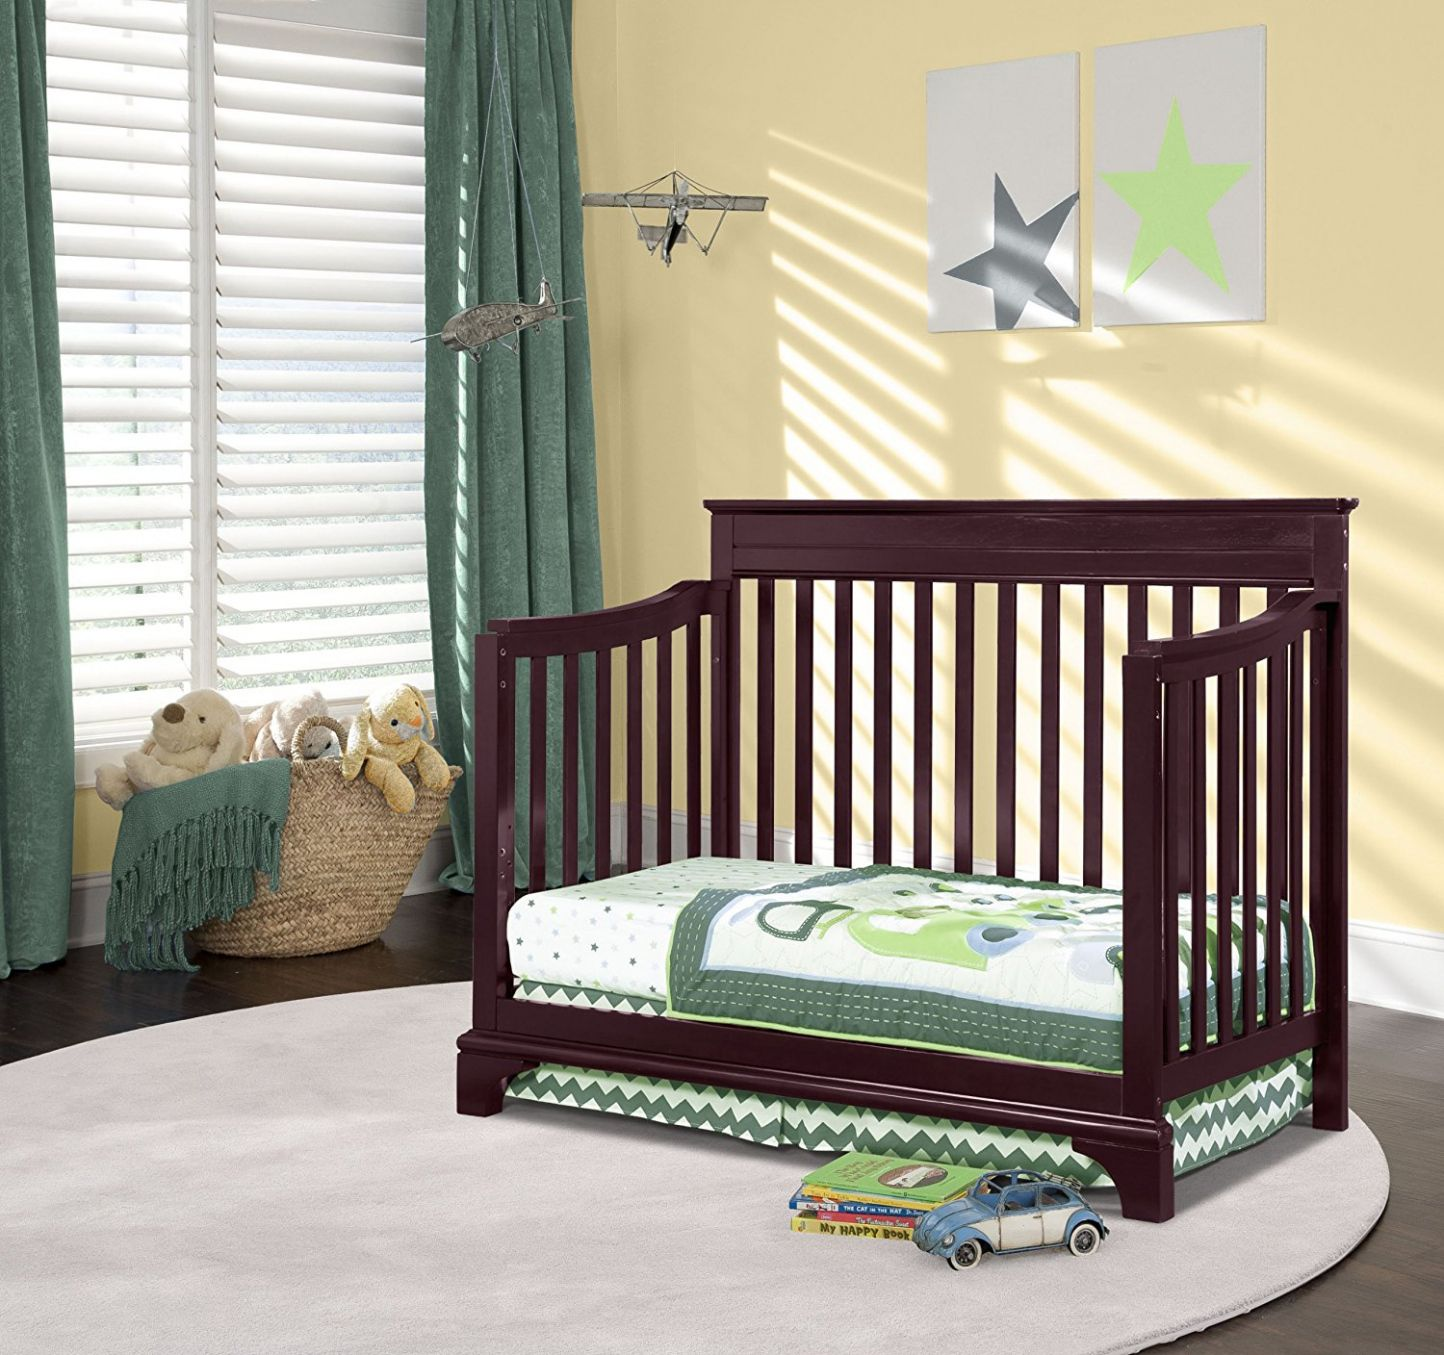 Broyhill Baby Furniture Lowes Paint Colors Interior Check More At Http Www